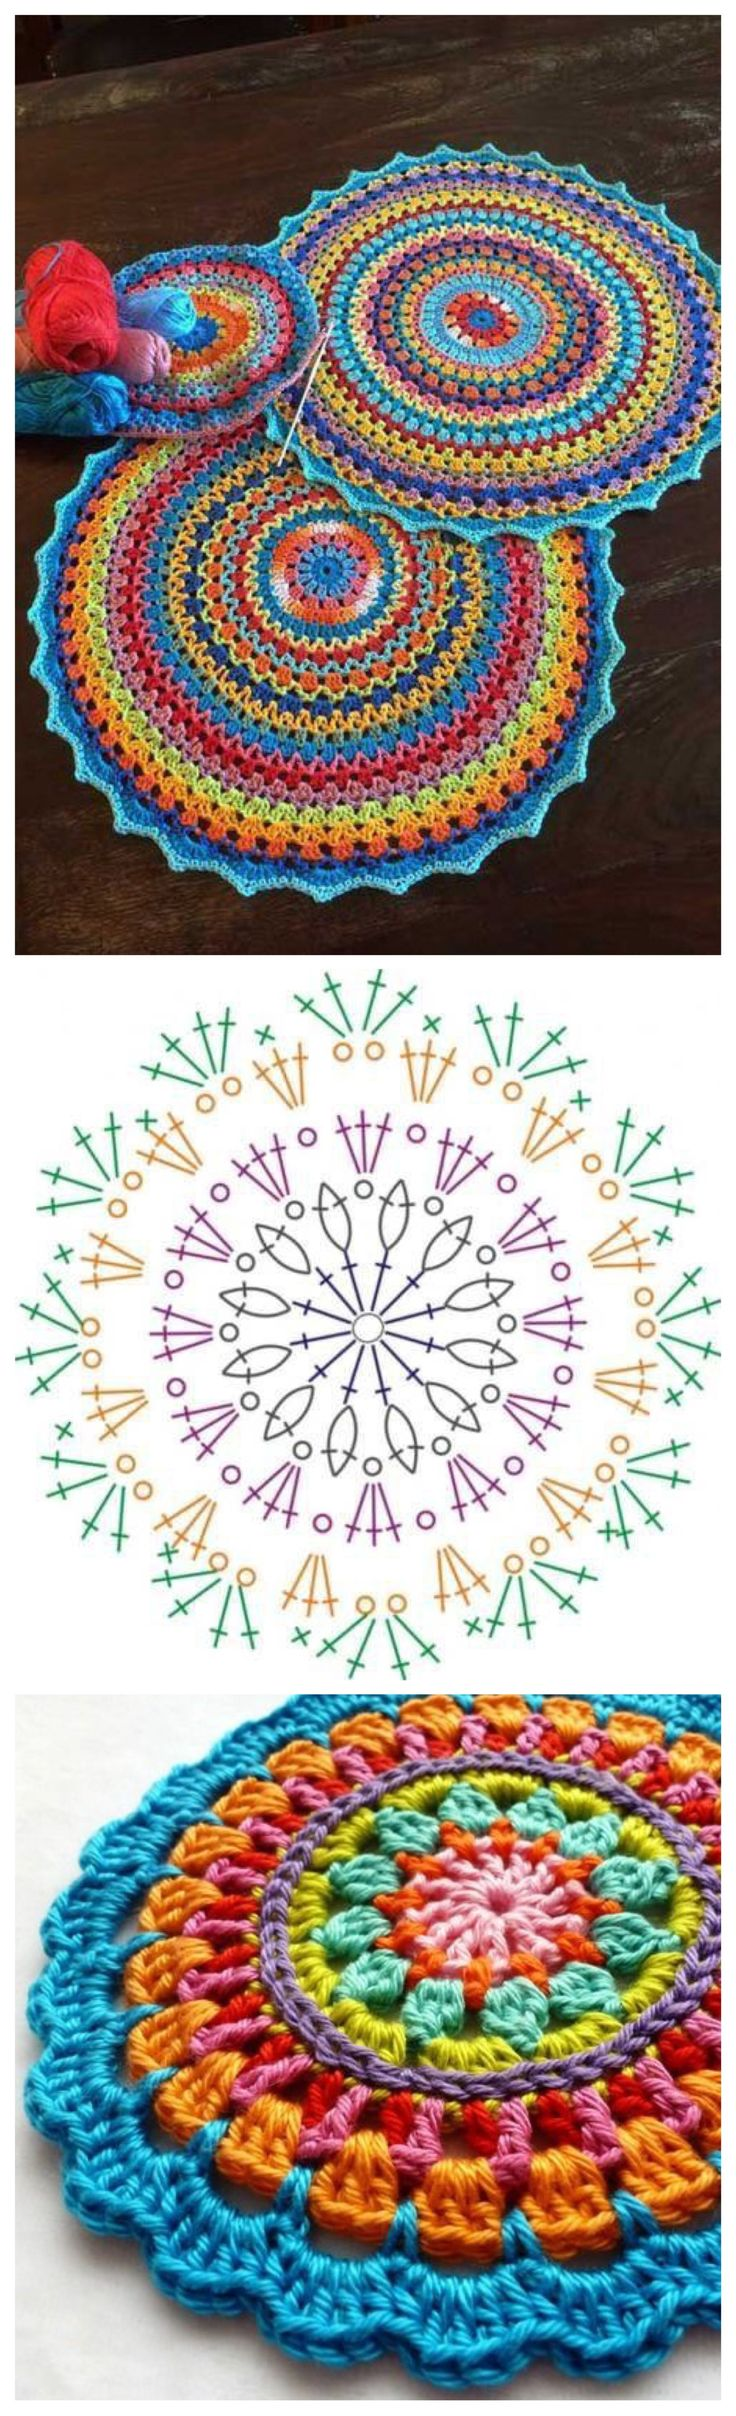 48 Best Crochet Images On Pinterest Motif Coaster Patterns Diagrams A Few Pretty Snowflakes Mandala Round Doilies Squares Granny Mandela